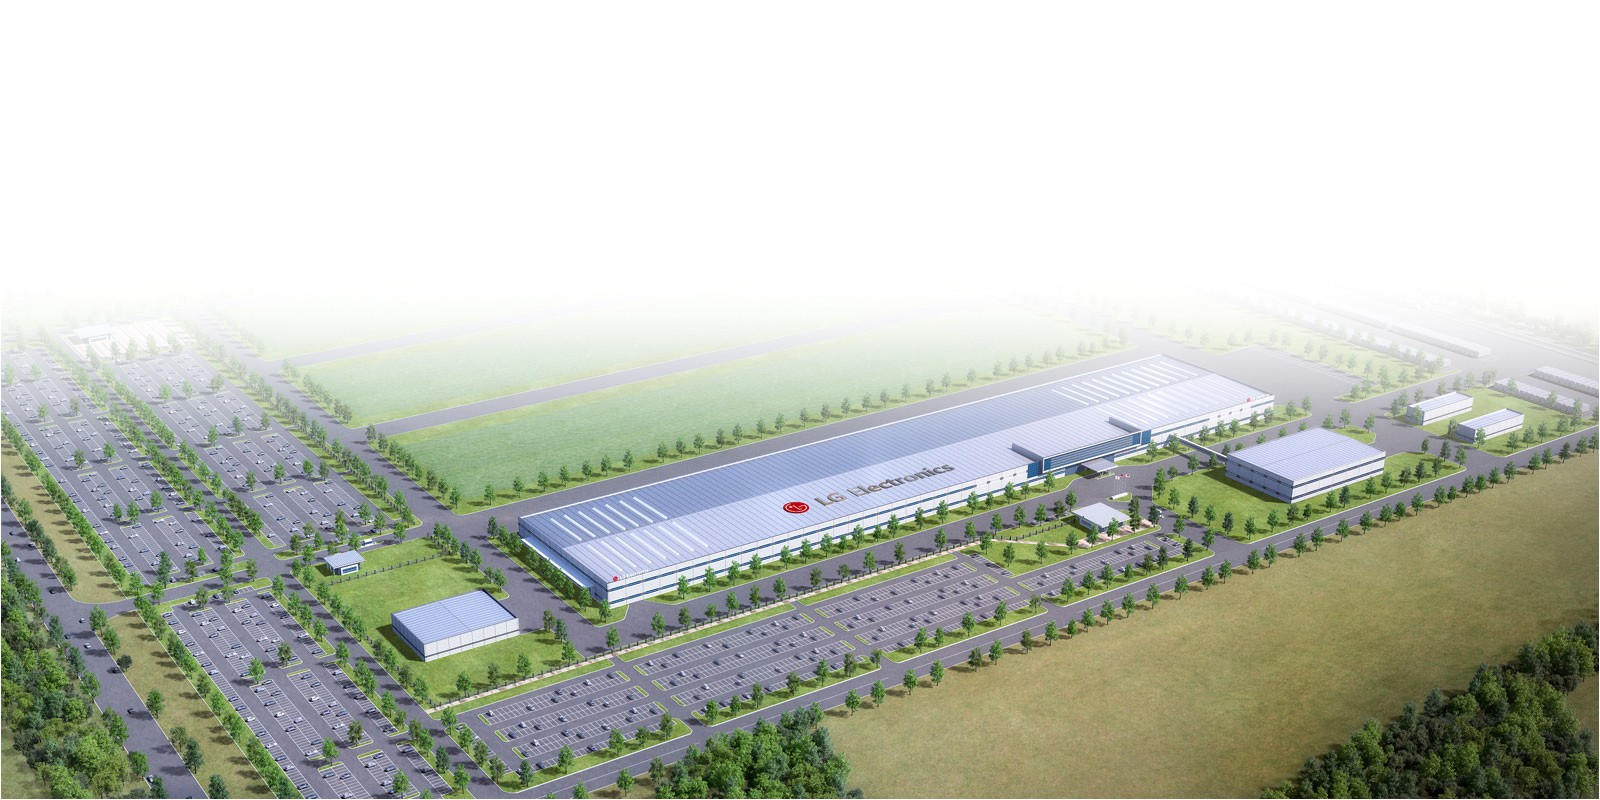 lg electronics to build us factory for home appliances in tennessee